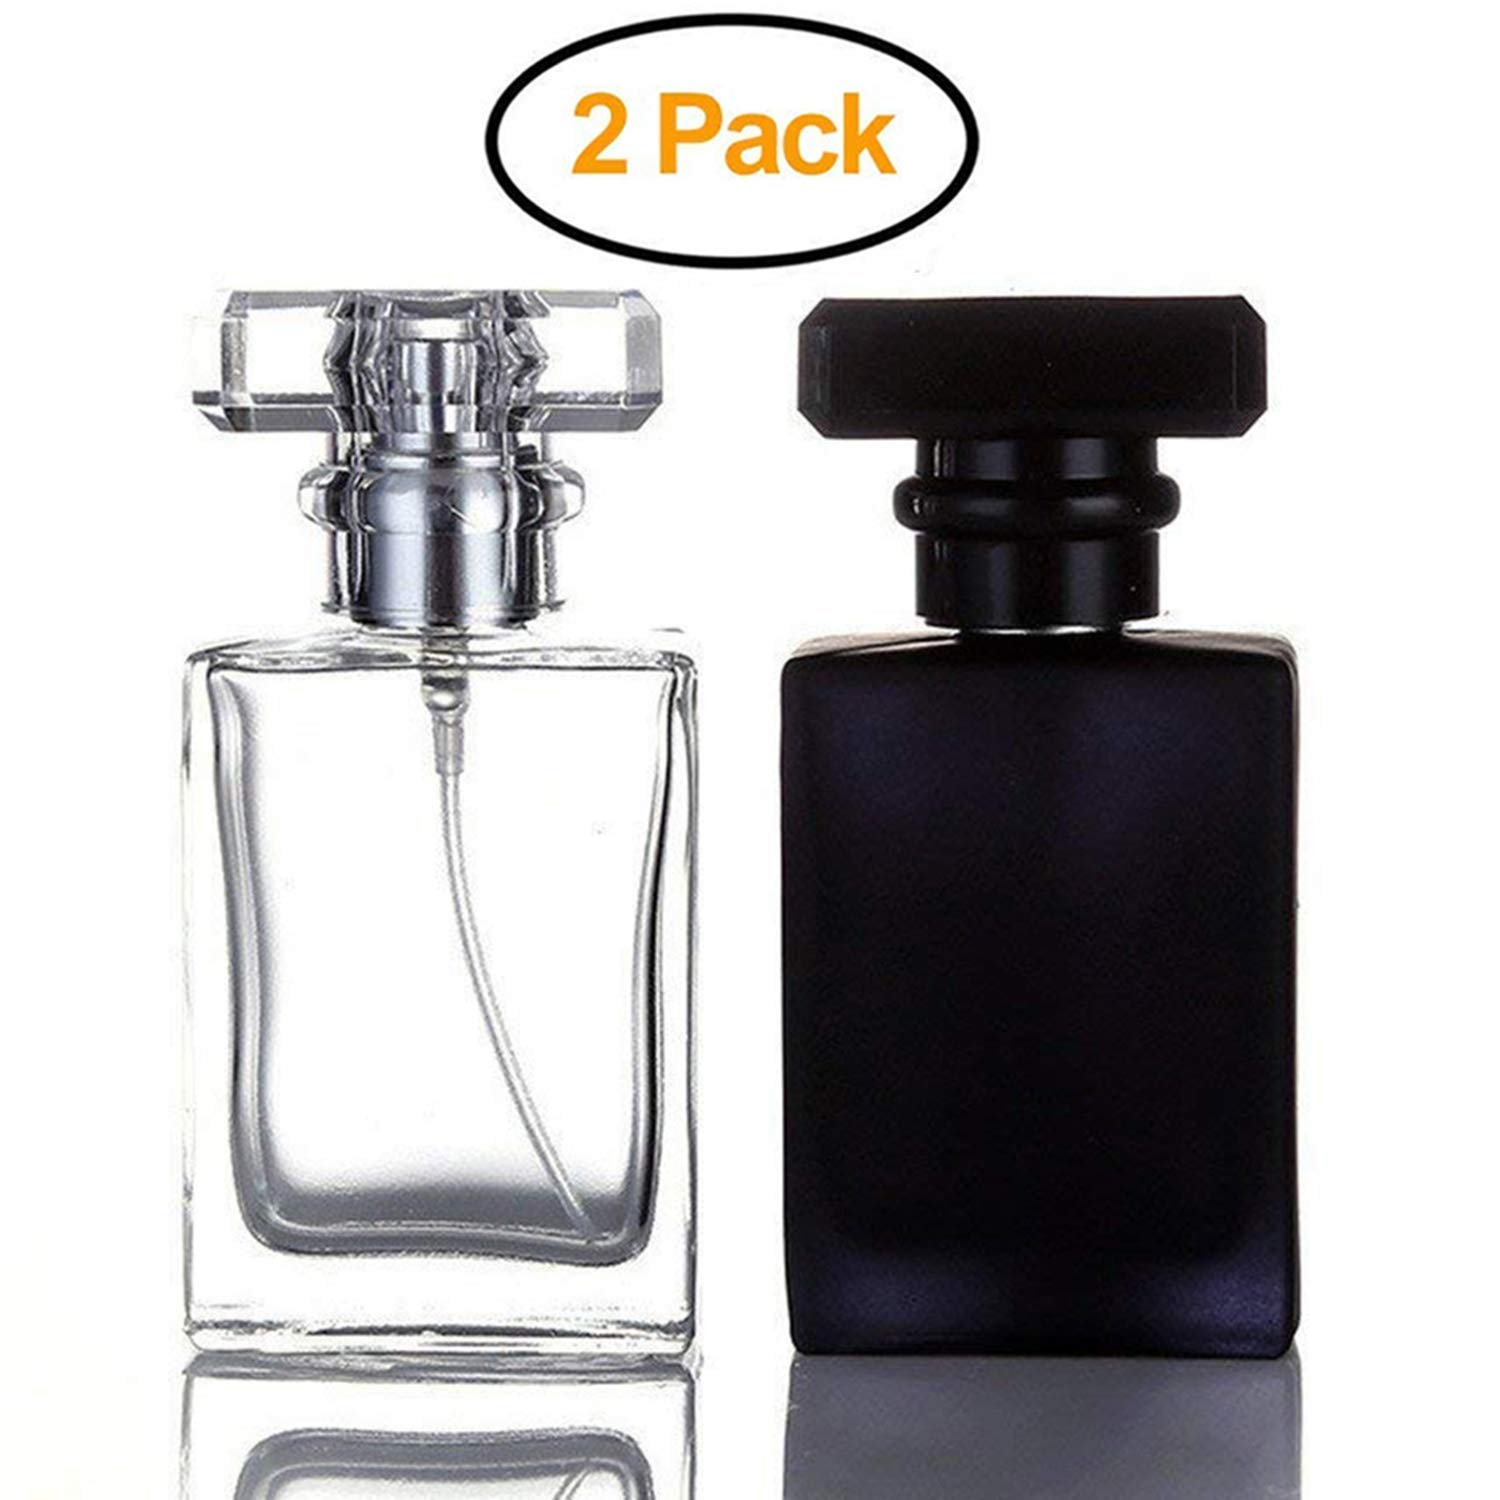 Futureup 2 Pack - 30ML Flint Glass Refillable Perfume Bottle, Square Portable Cologne Atomizer Empty Bottle with Spray Applicator For Travel (Transparent and Black)